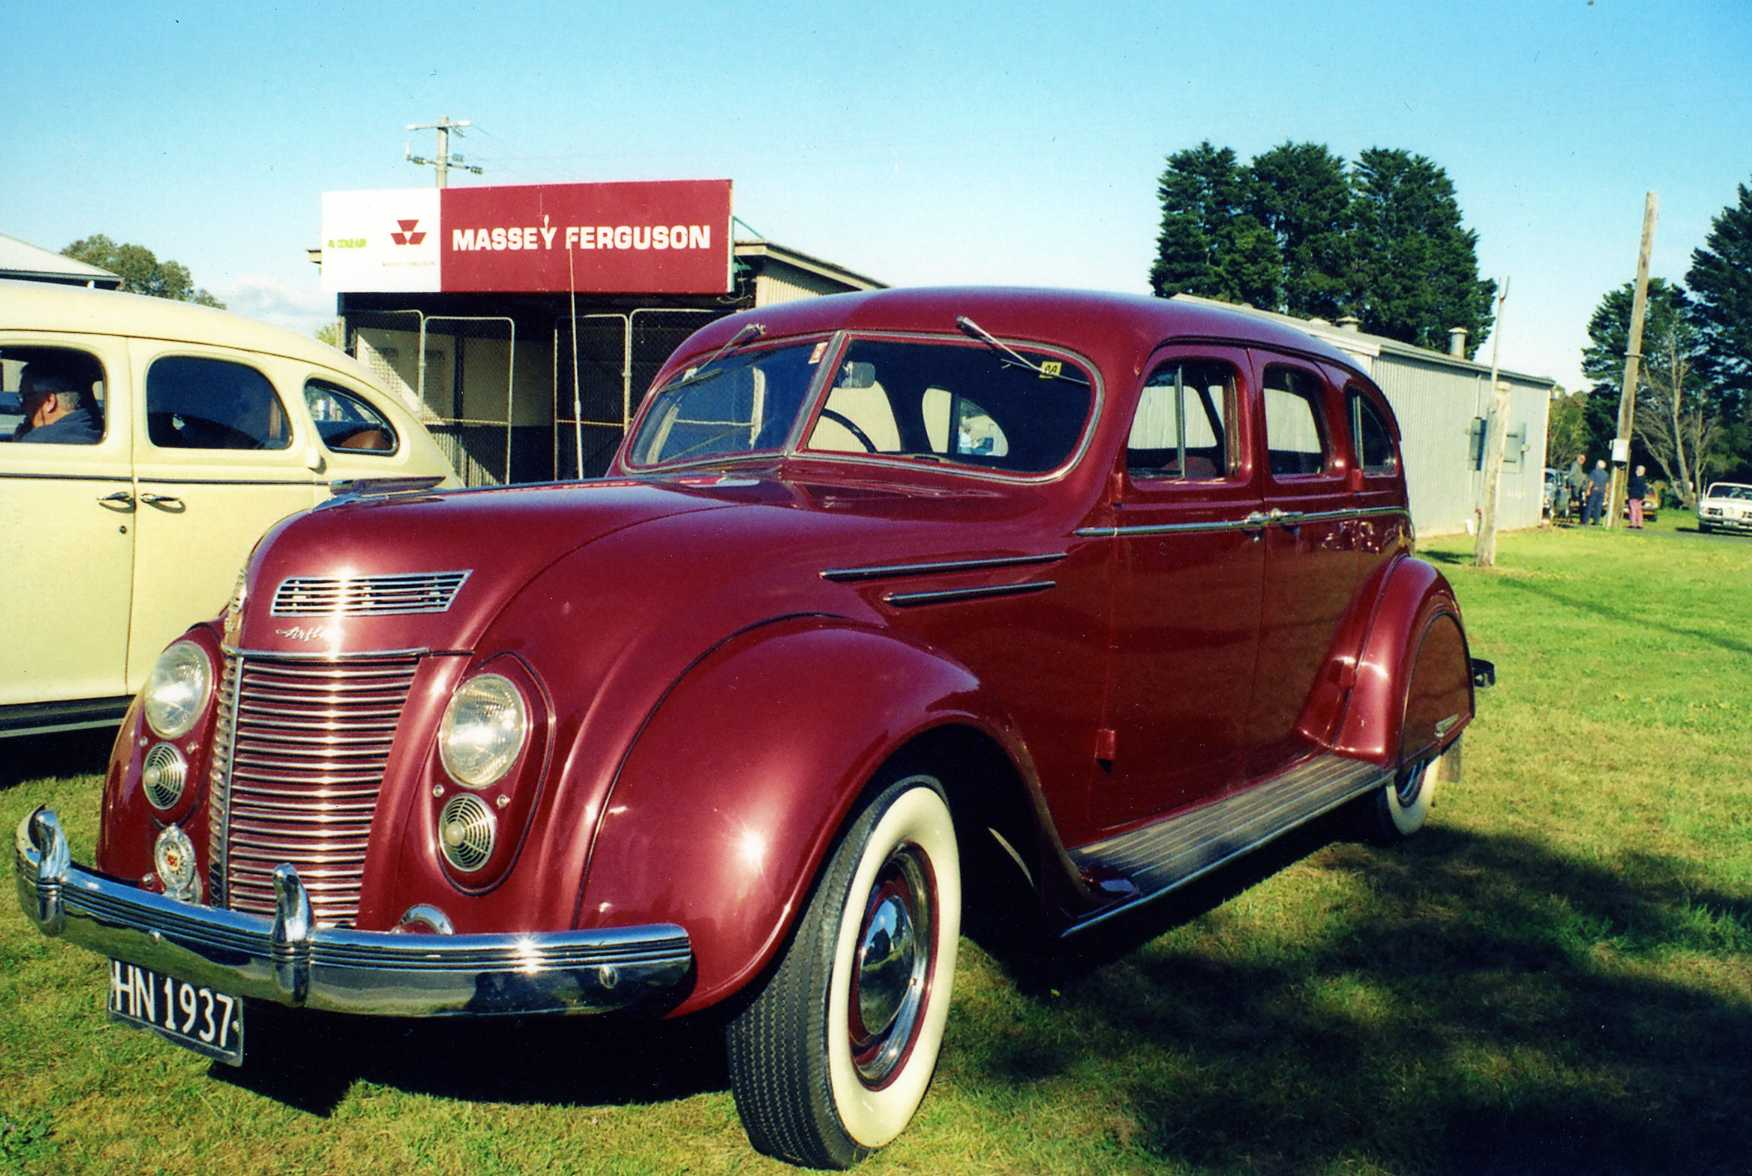 1937 Chrysler C17 sedan RHD